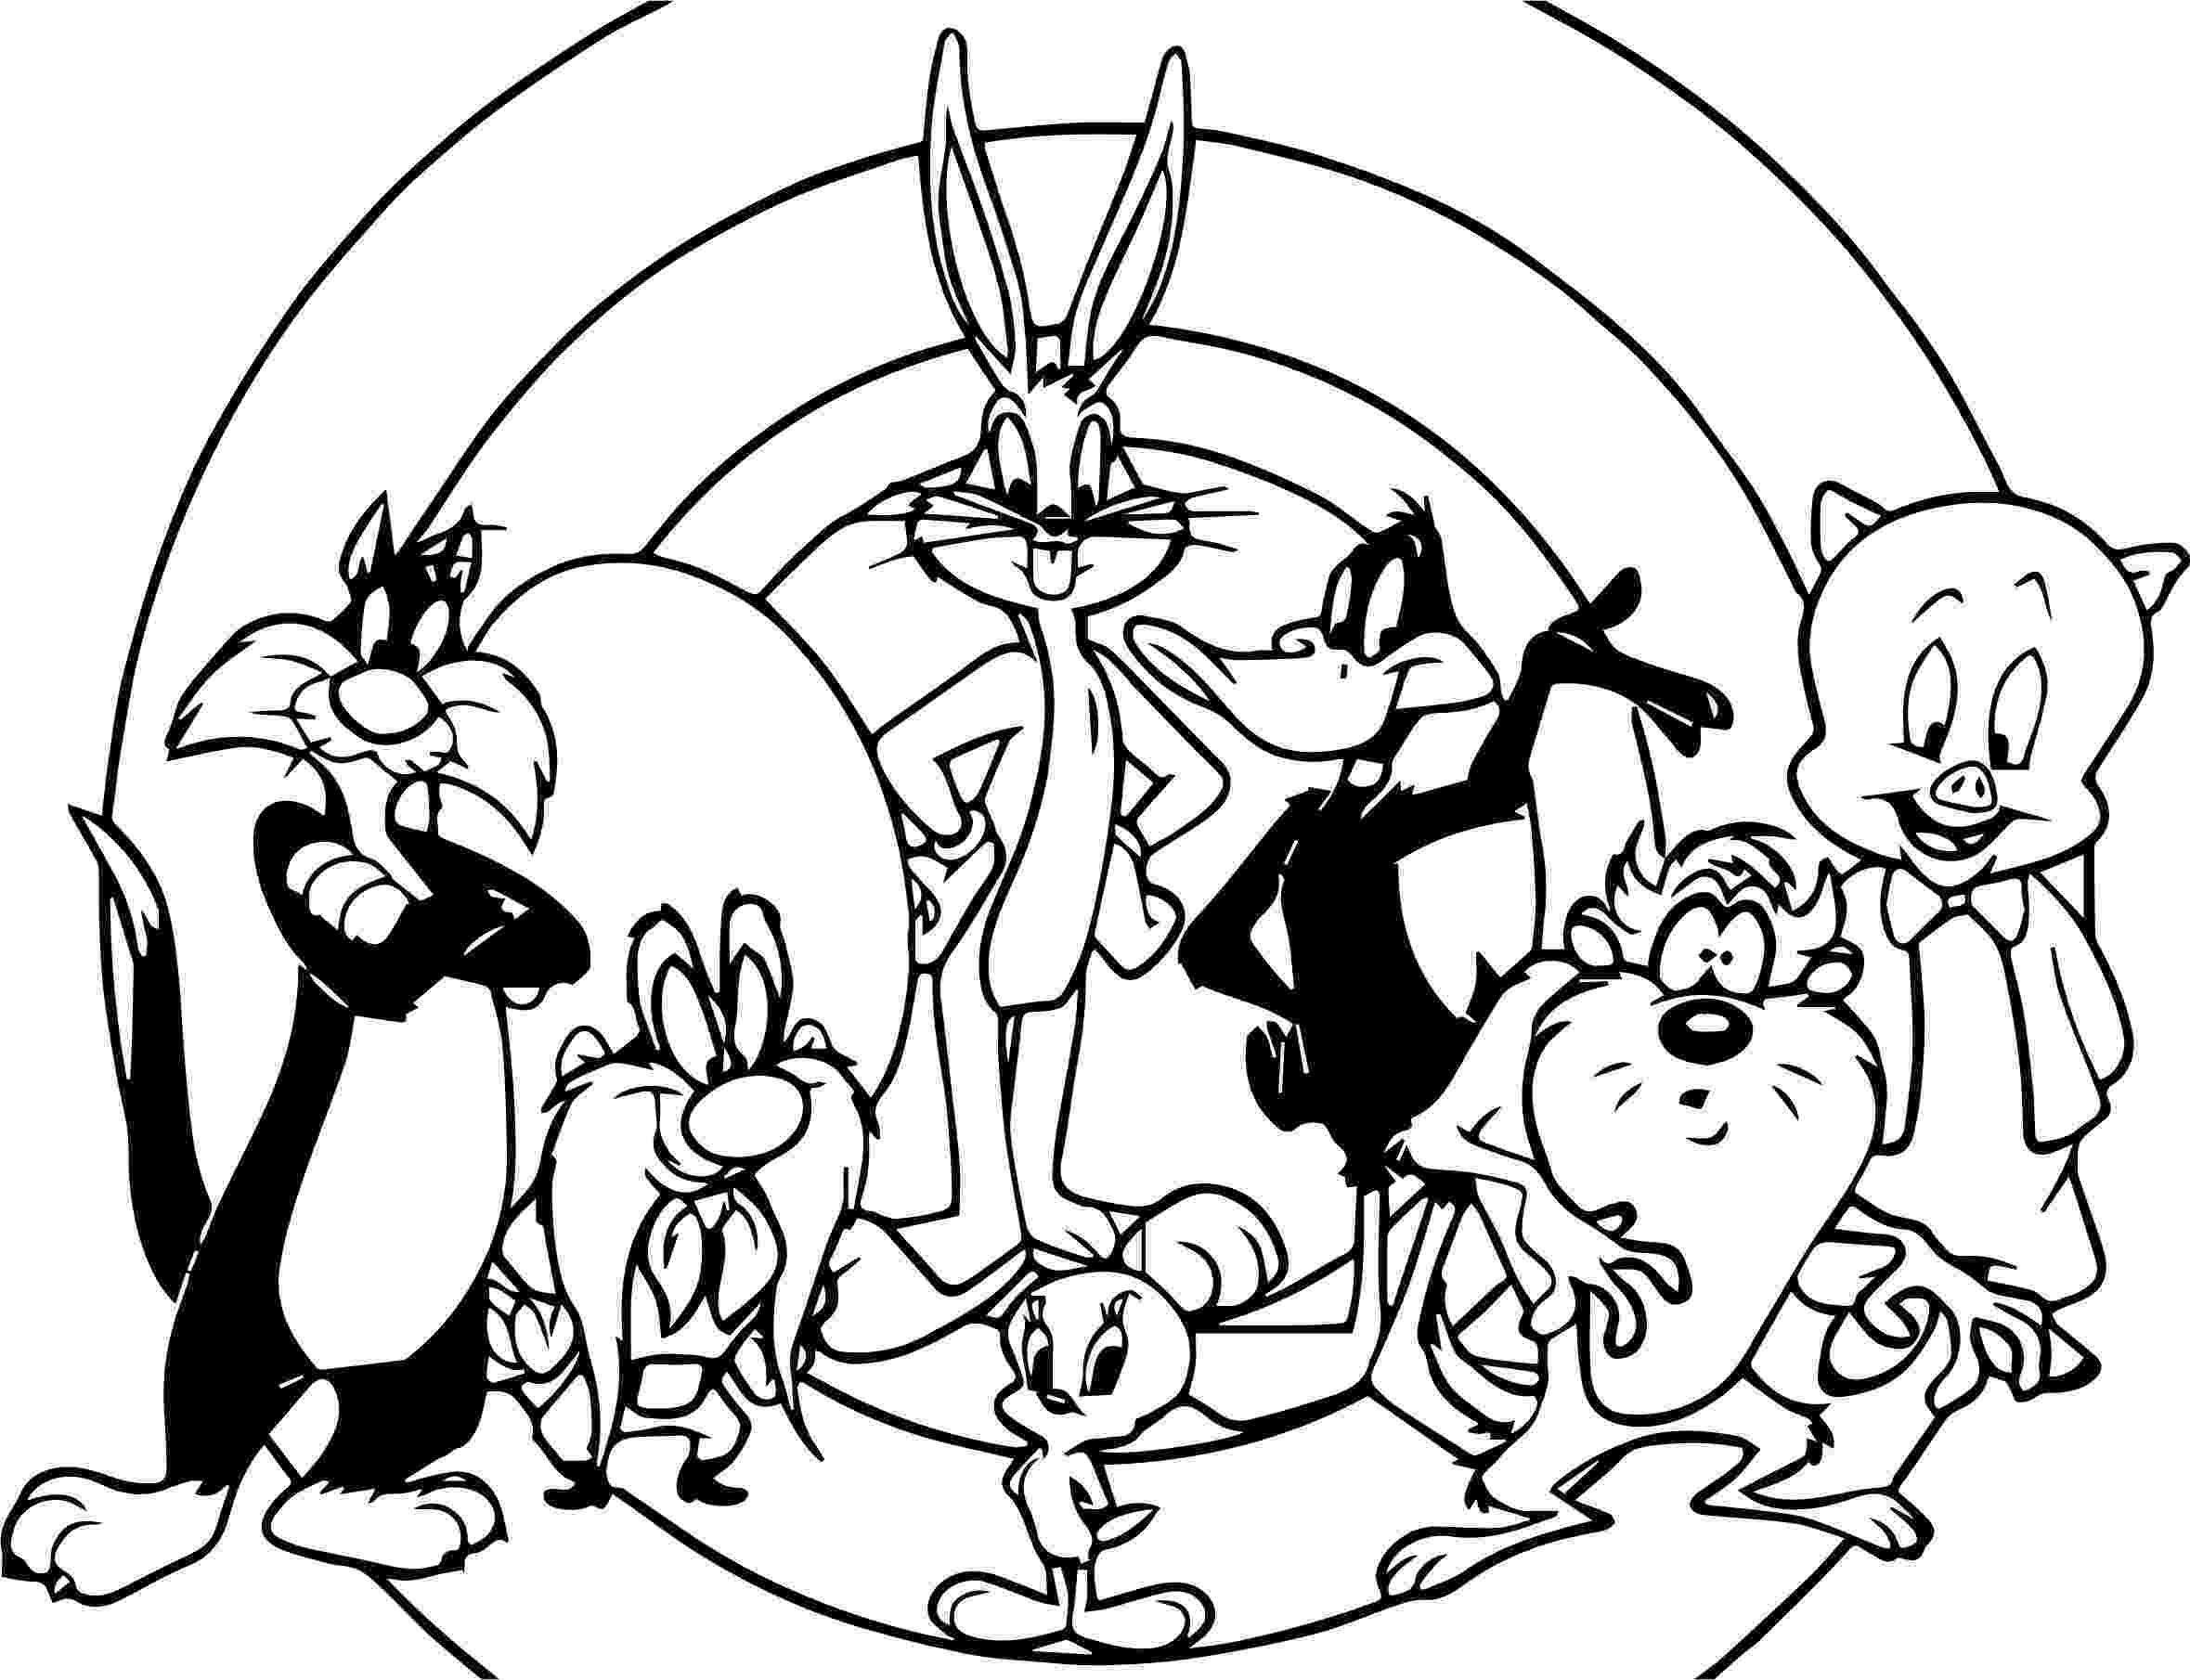 looney toon coloring pages coloring pages looney tunes animated images gifs toon looney pages coloring